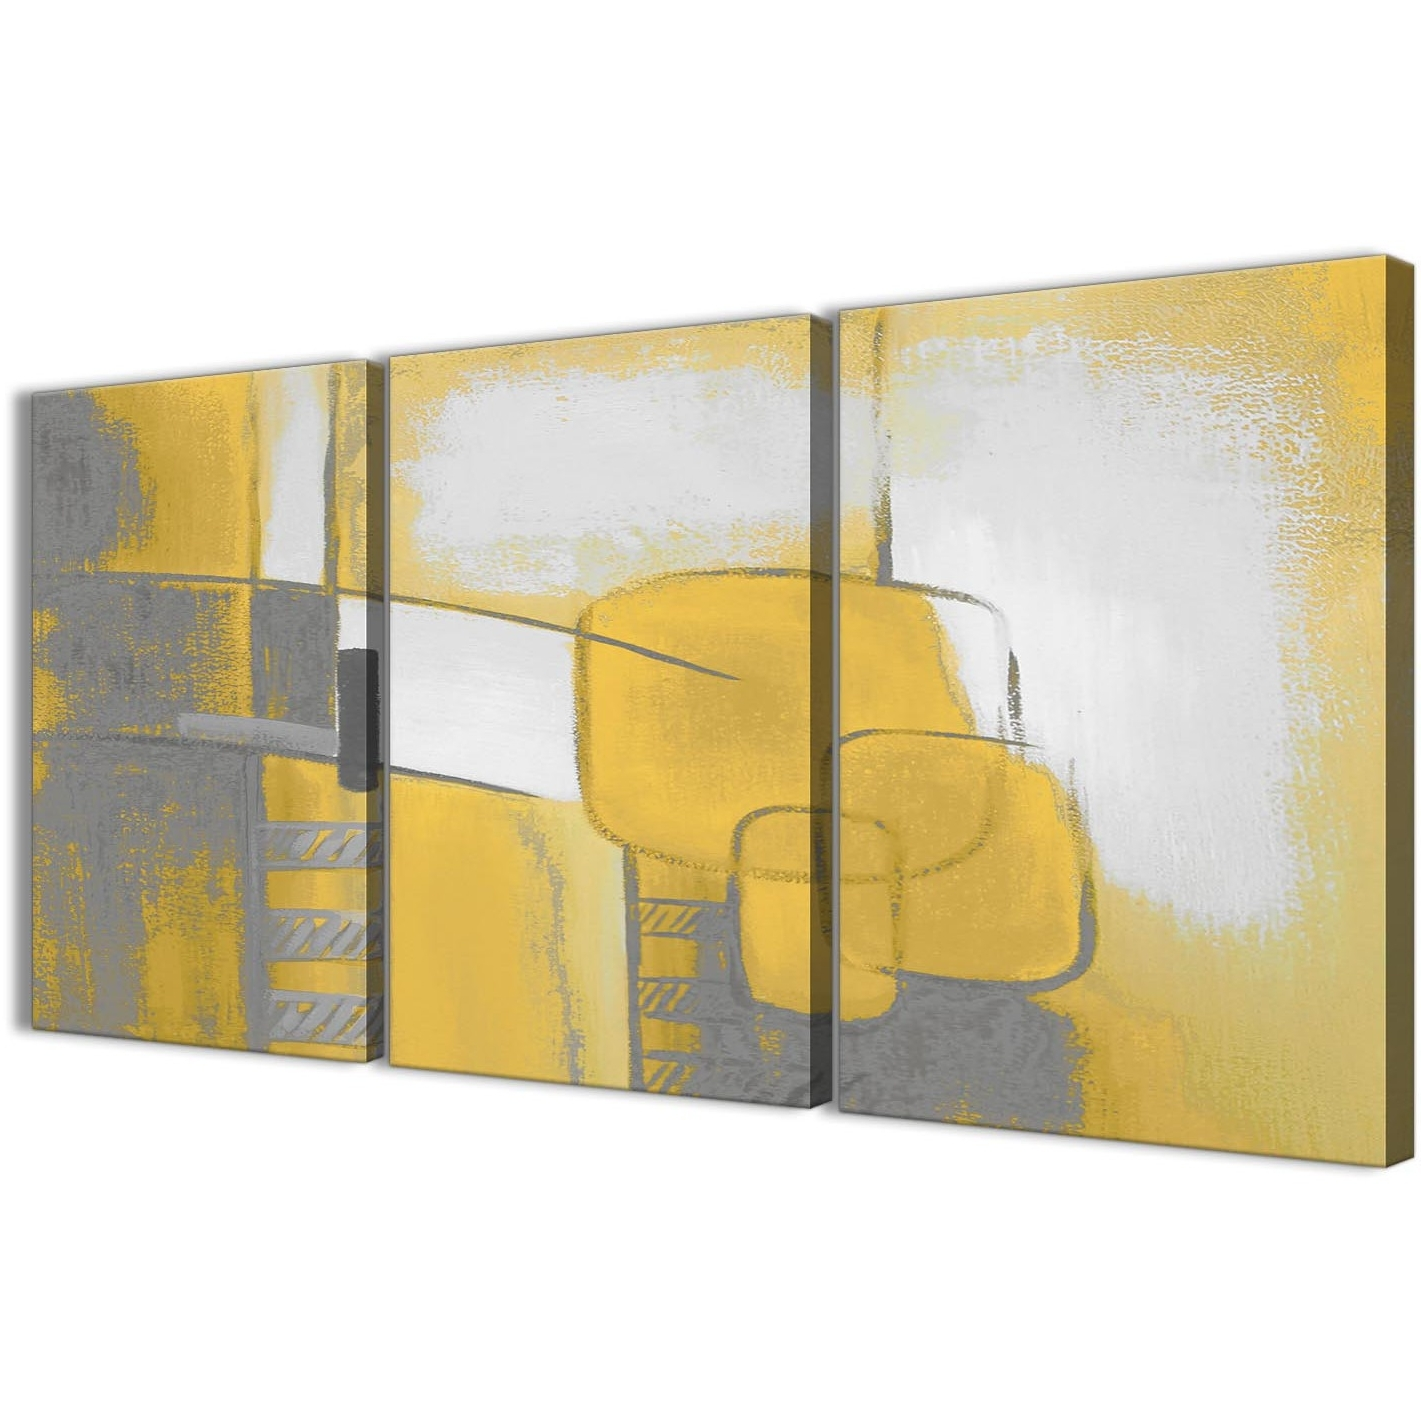 Kitchen Canvas Wall Art Decors Inside Famous 3 Piece Mustard Yellow Grey Painting Kitchen Canvas Pictures Decor (Gallery 10 of 20)